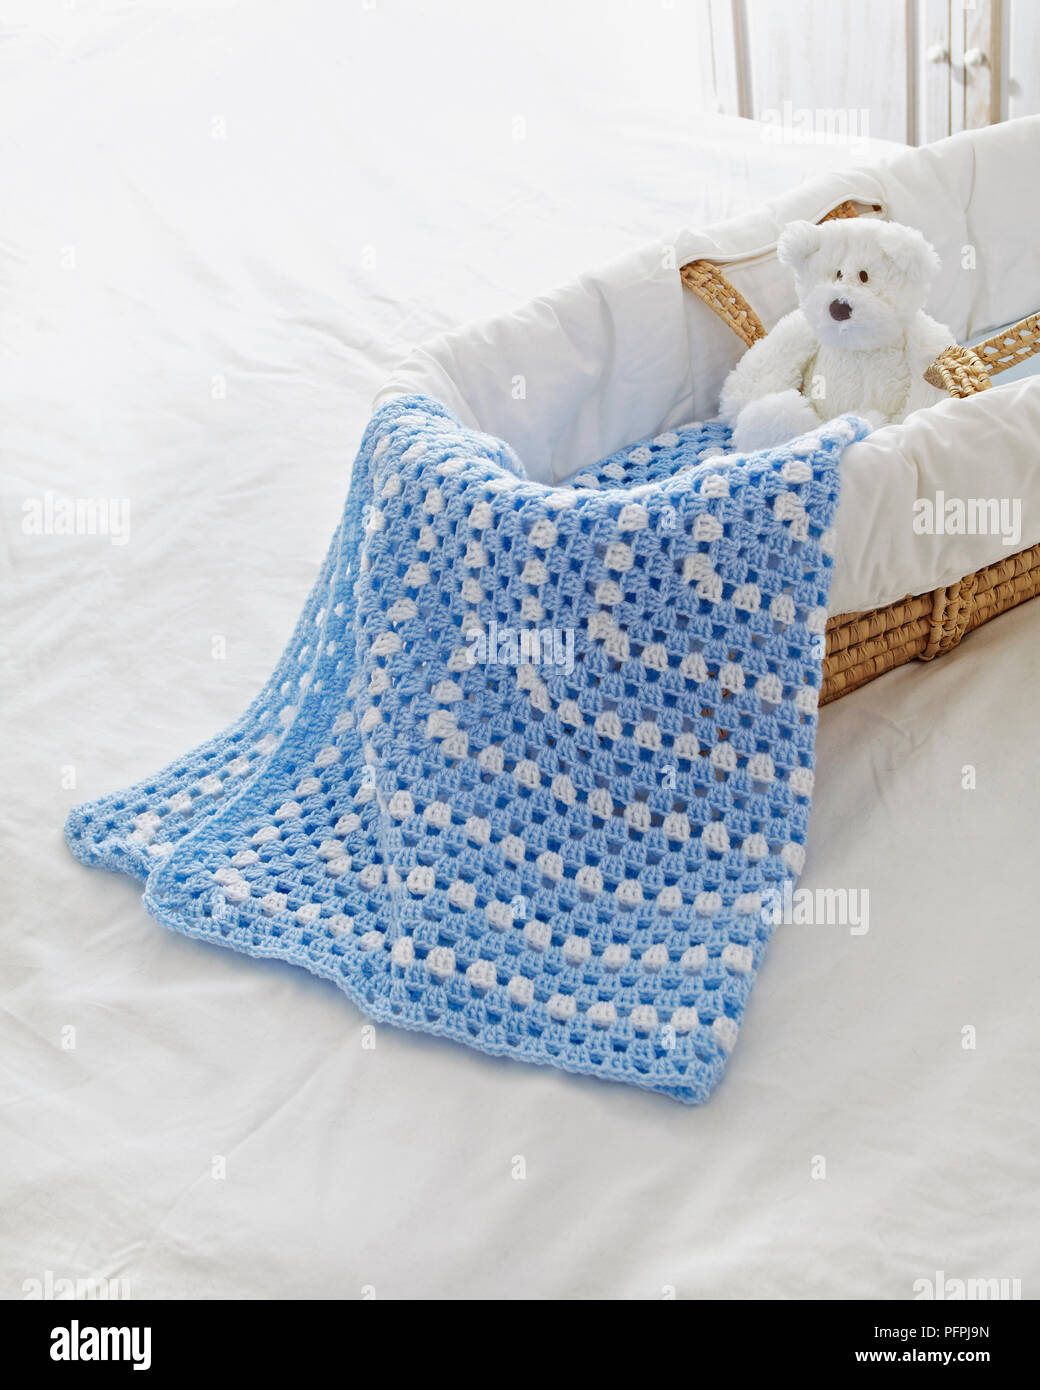 Crocheted Baby Blanket Draped Over Side Of Moses Basket Stock Photo Alamy